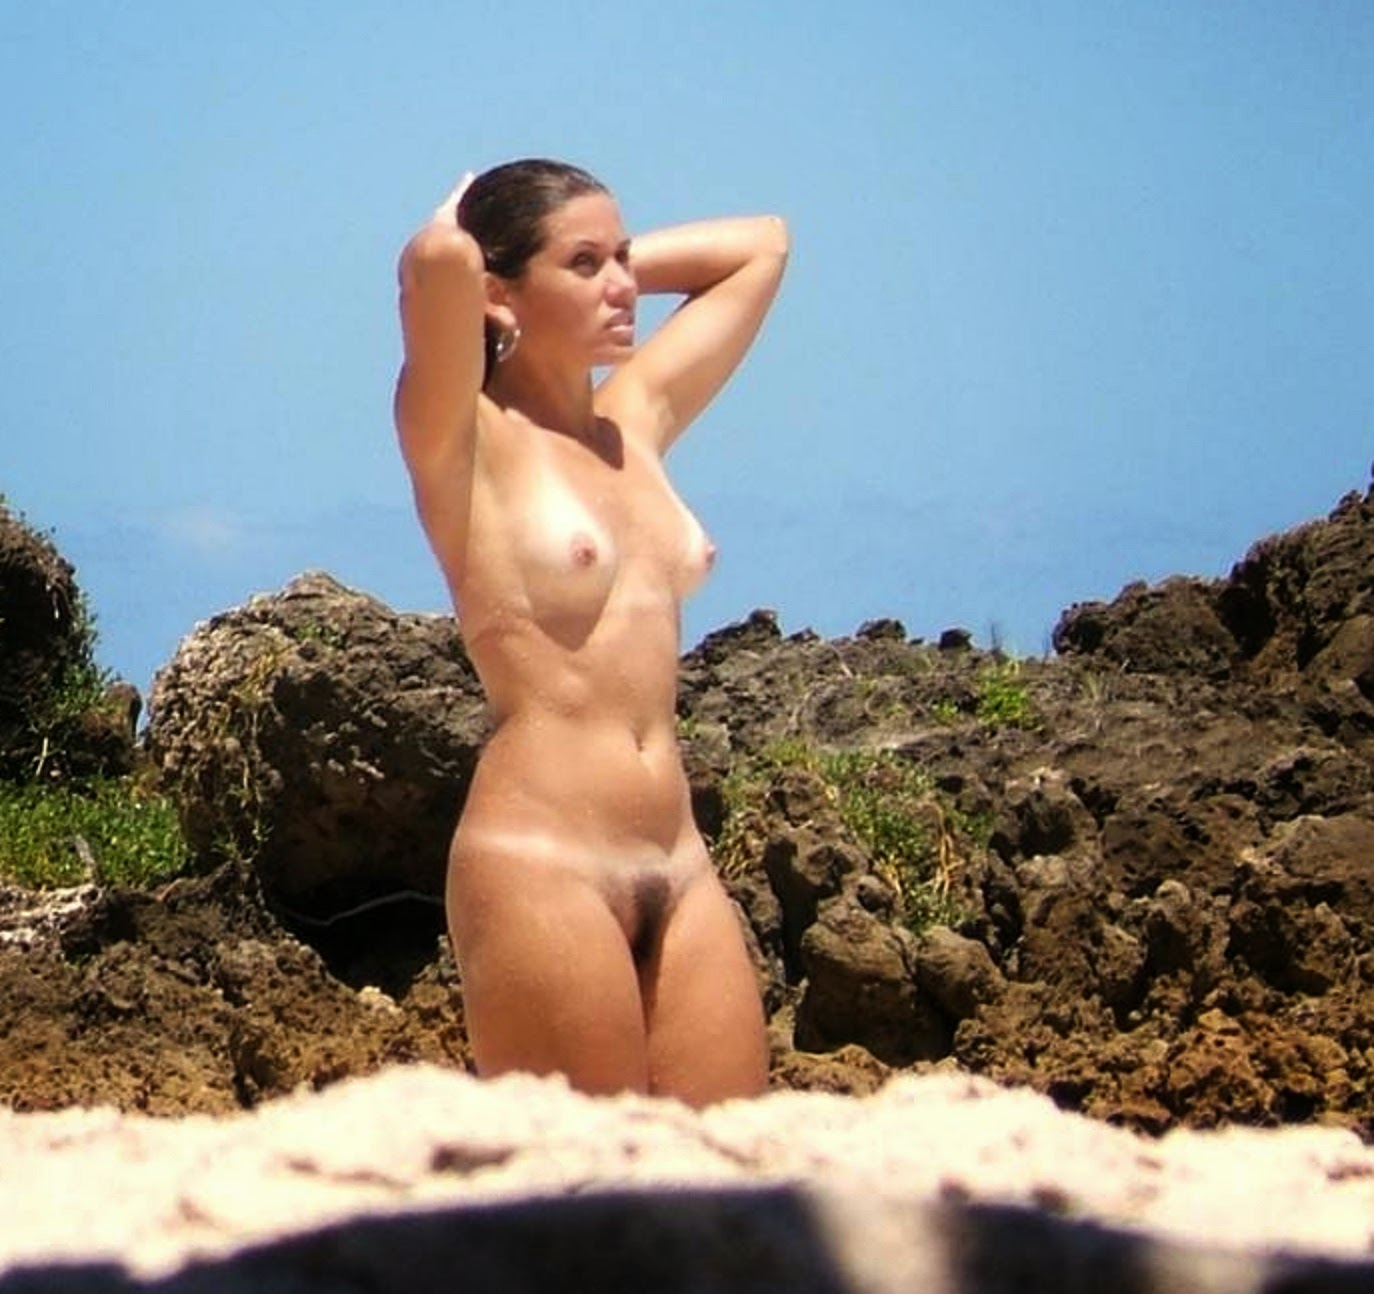 Naked sexiest women images